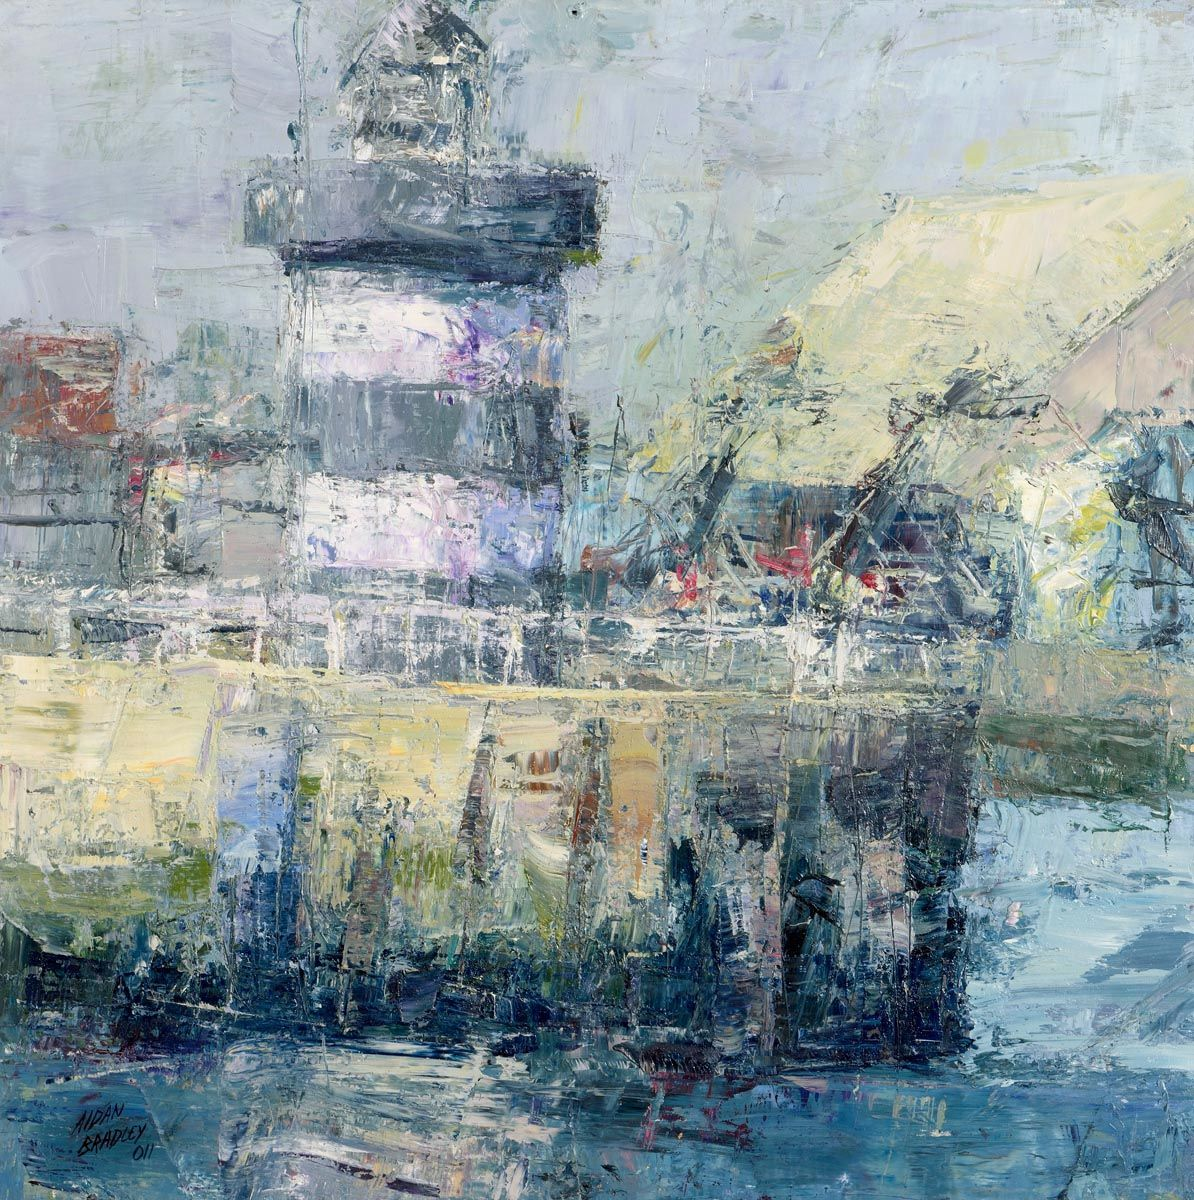 Howth Head Lighthouse (2011) at Morgan O'Driscoll Art Auctions